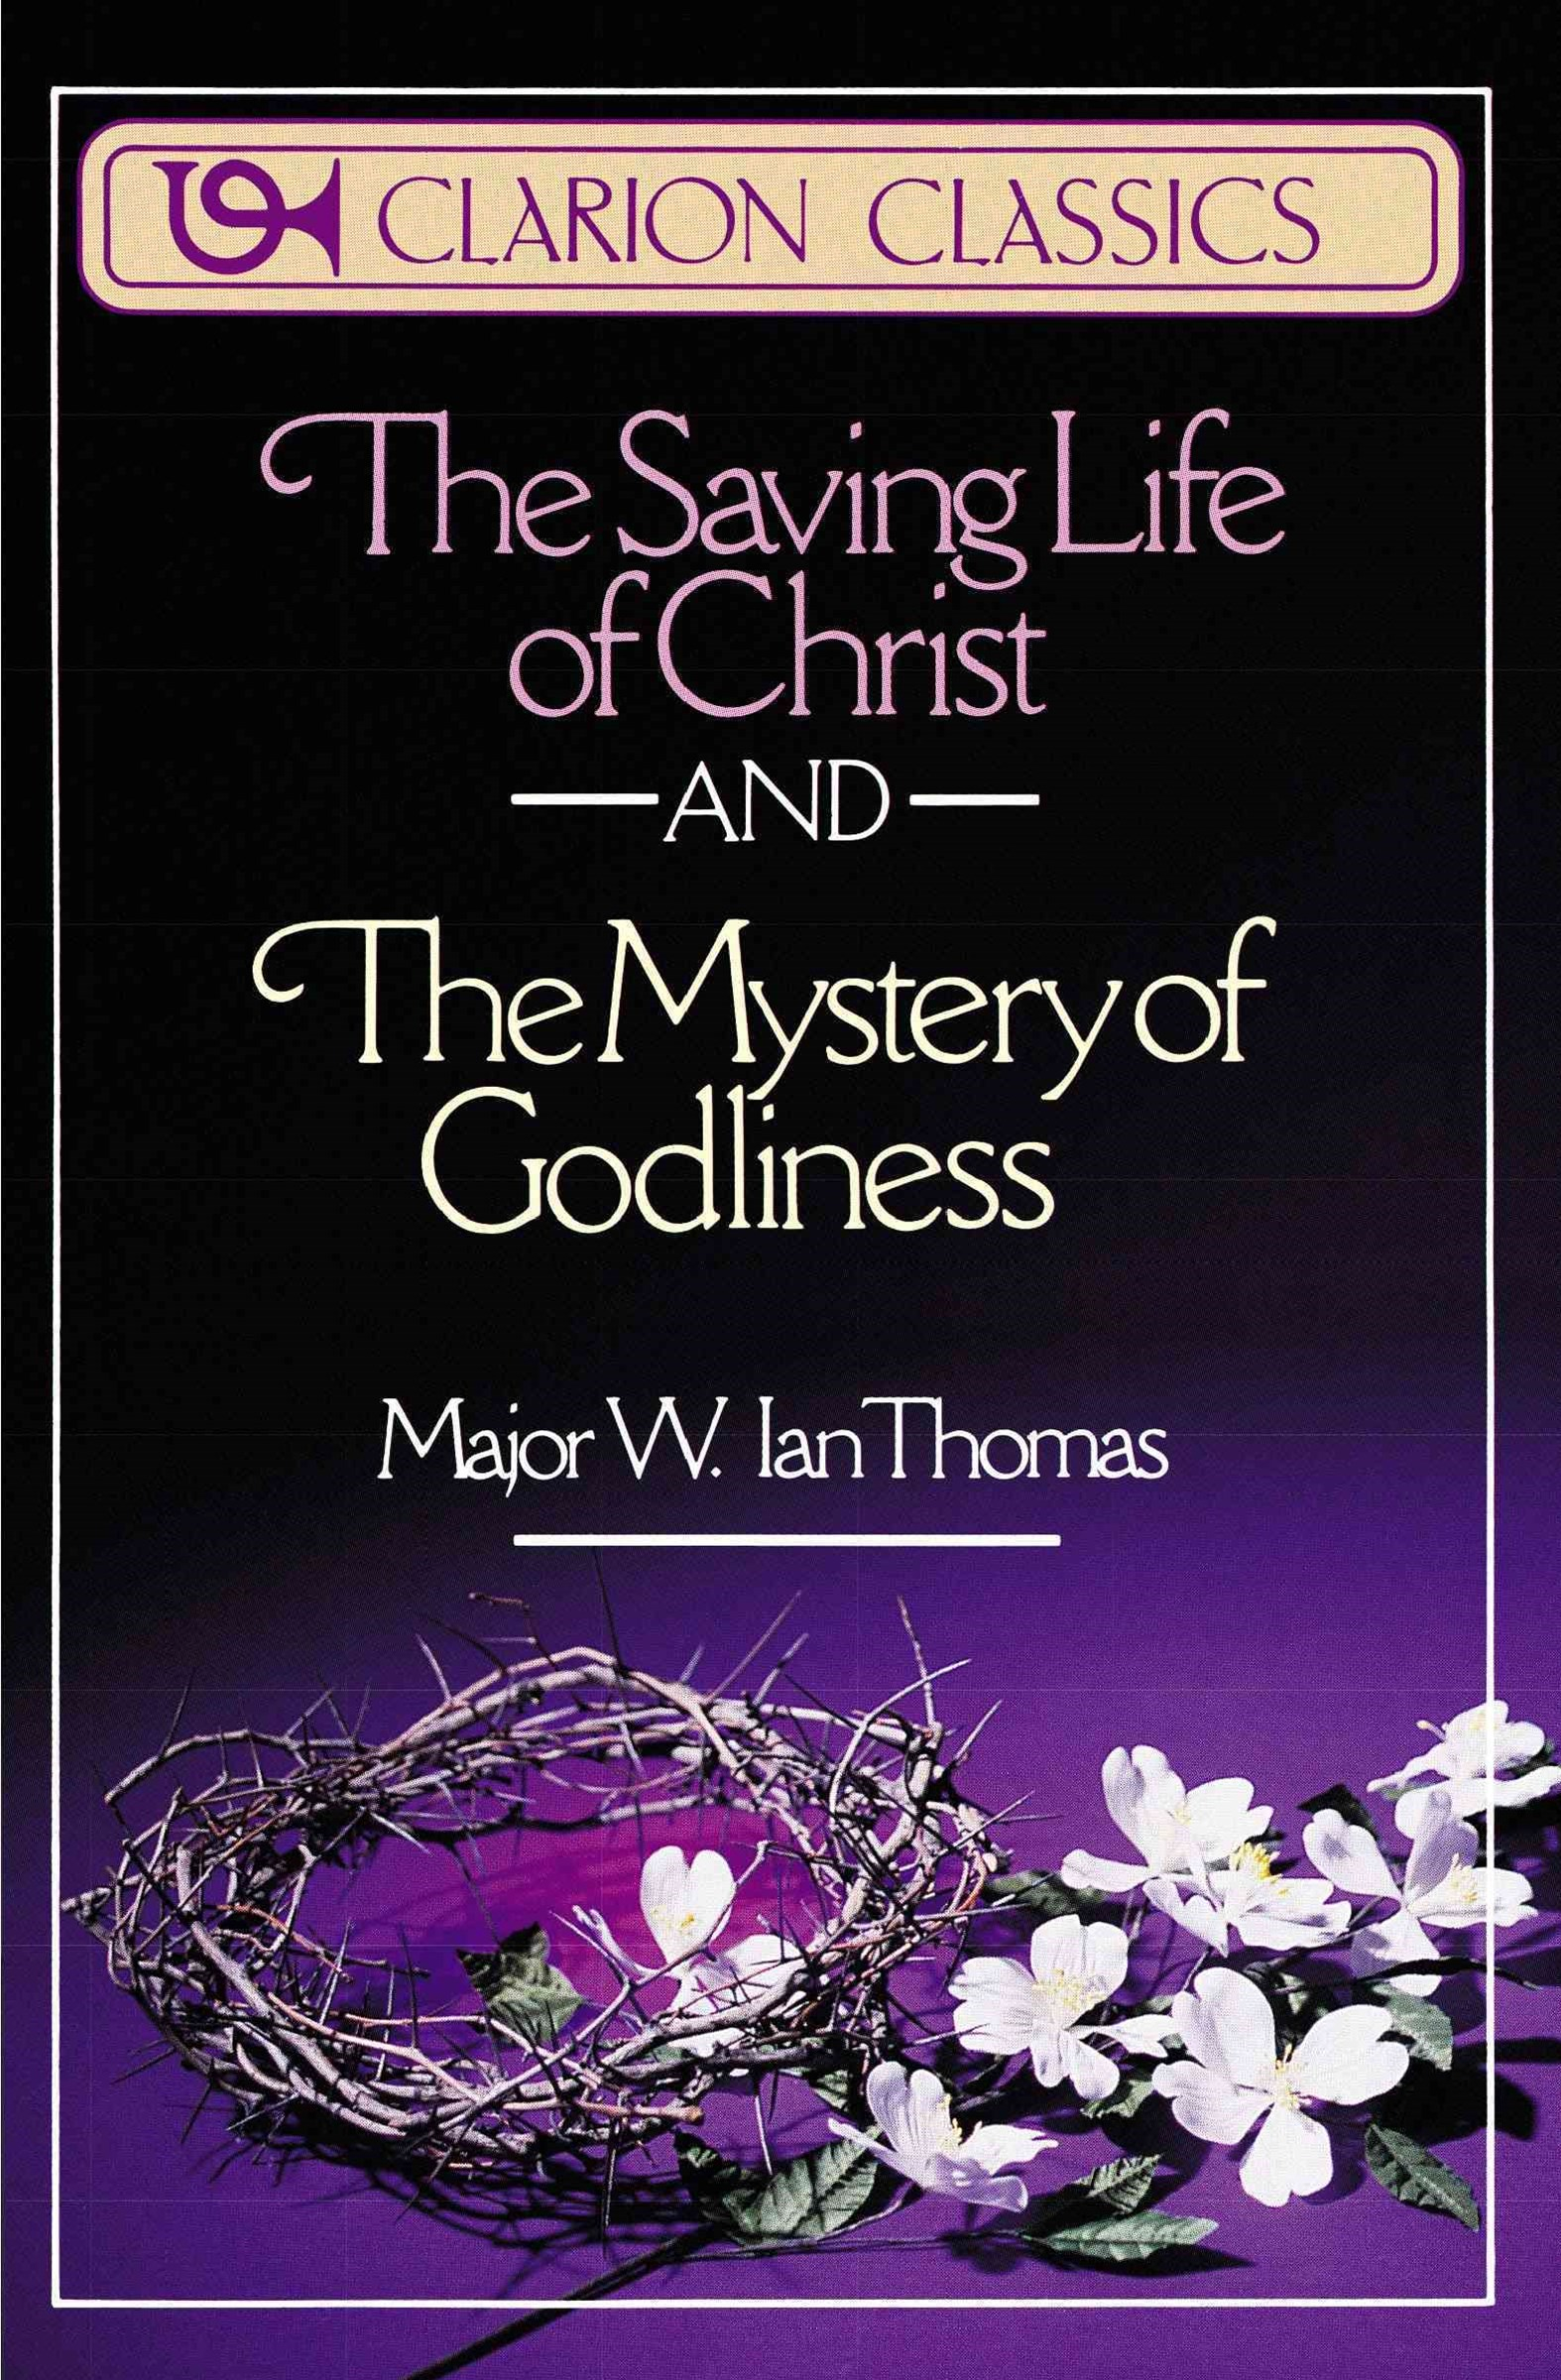 The Saving Life of Christ: AND The Mystery of Godliness